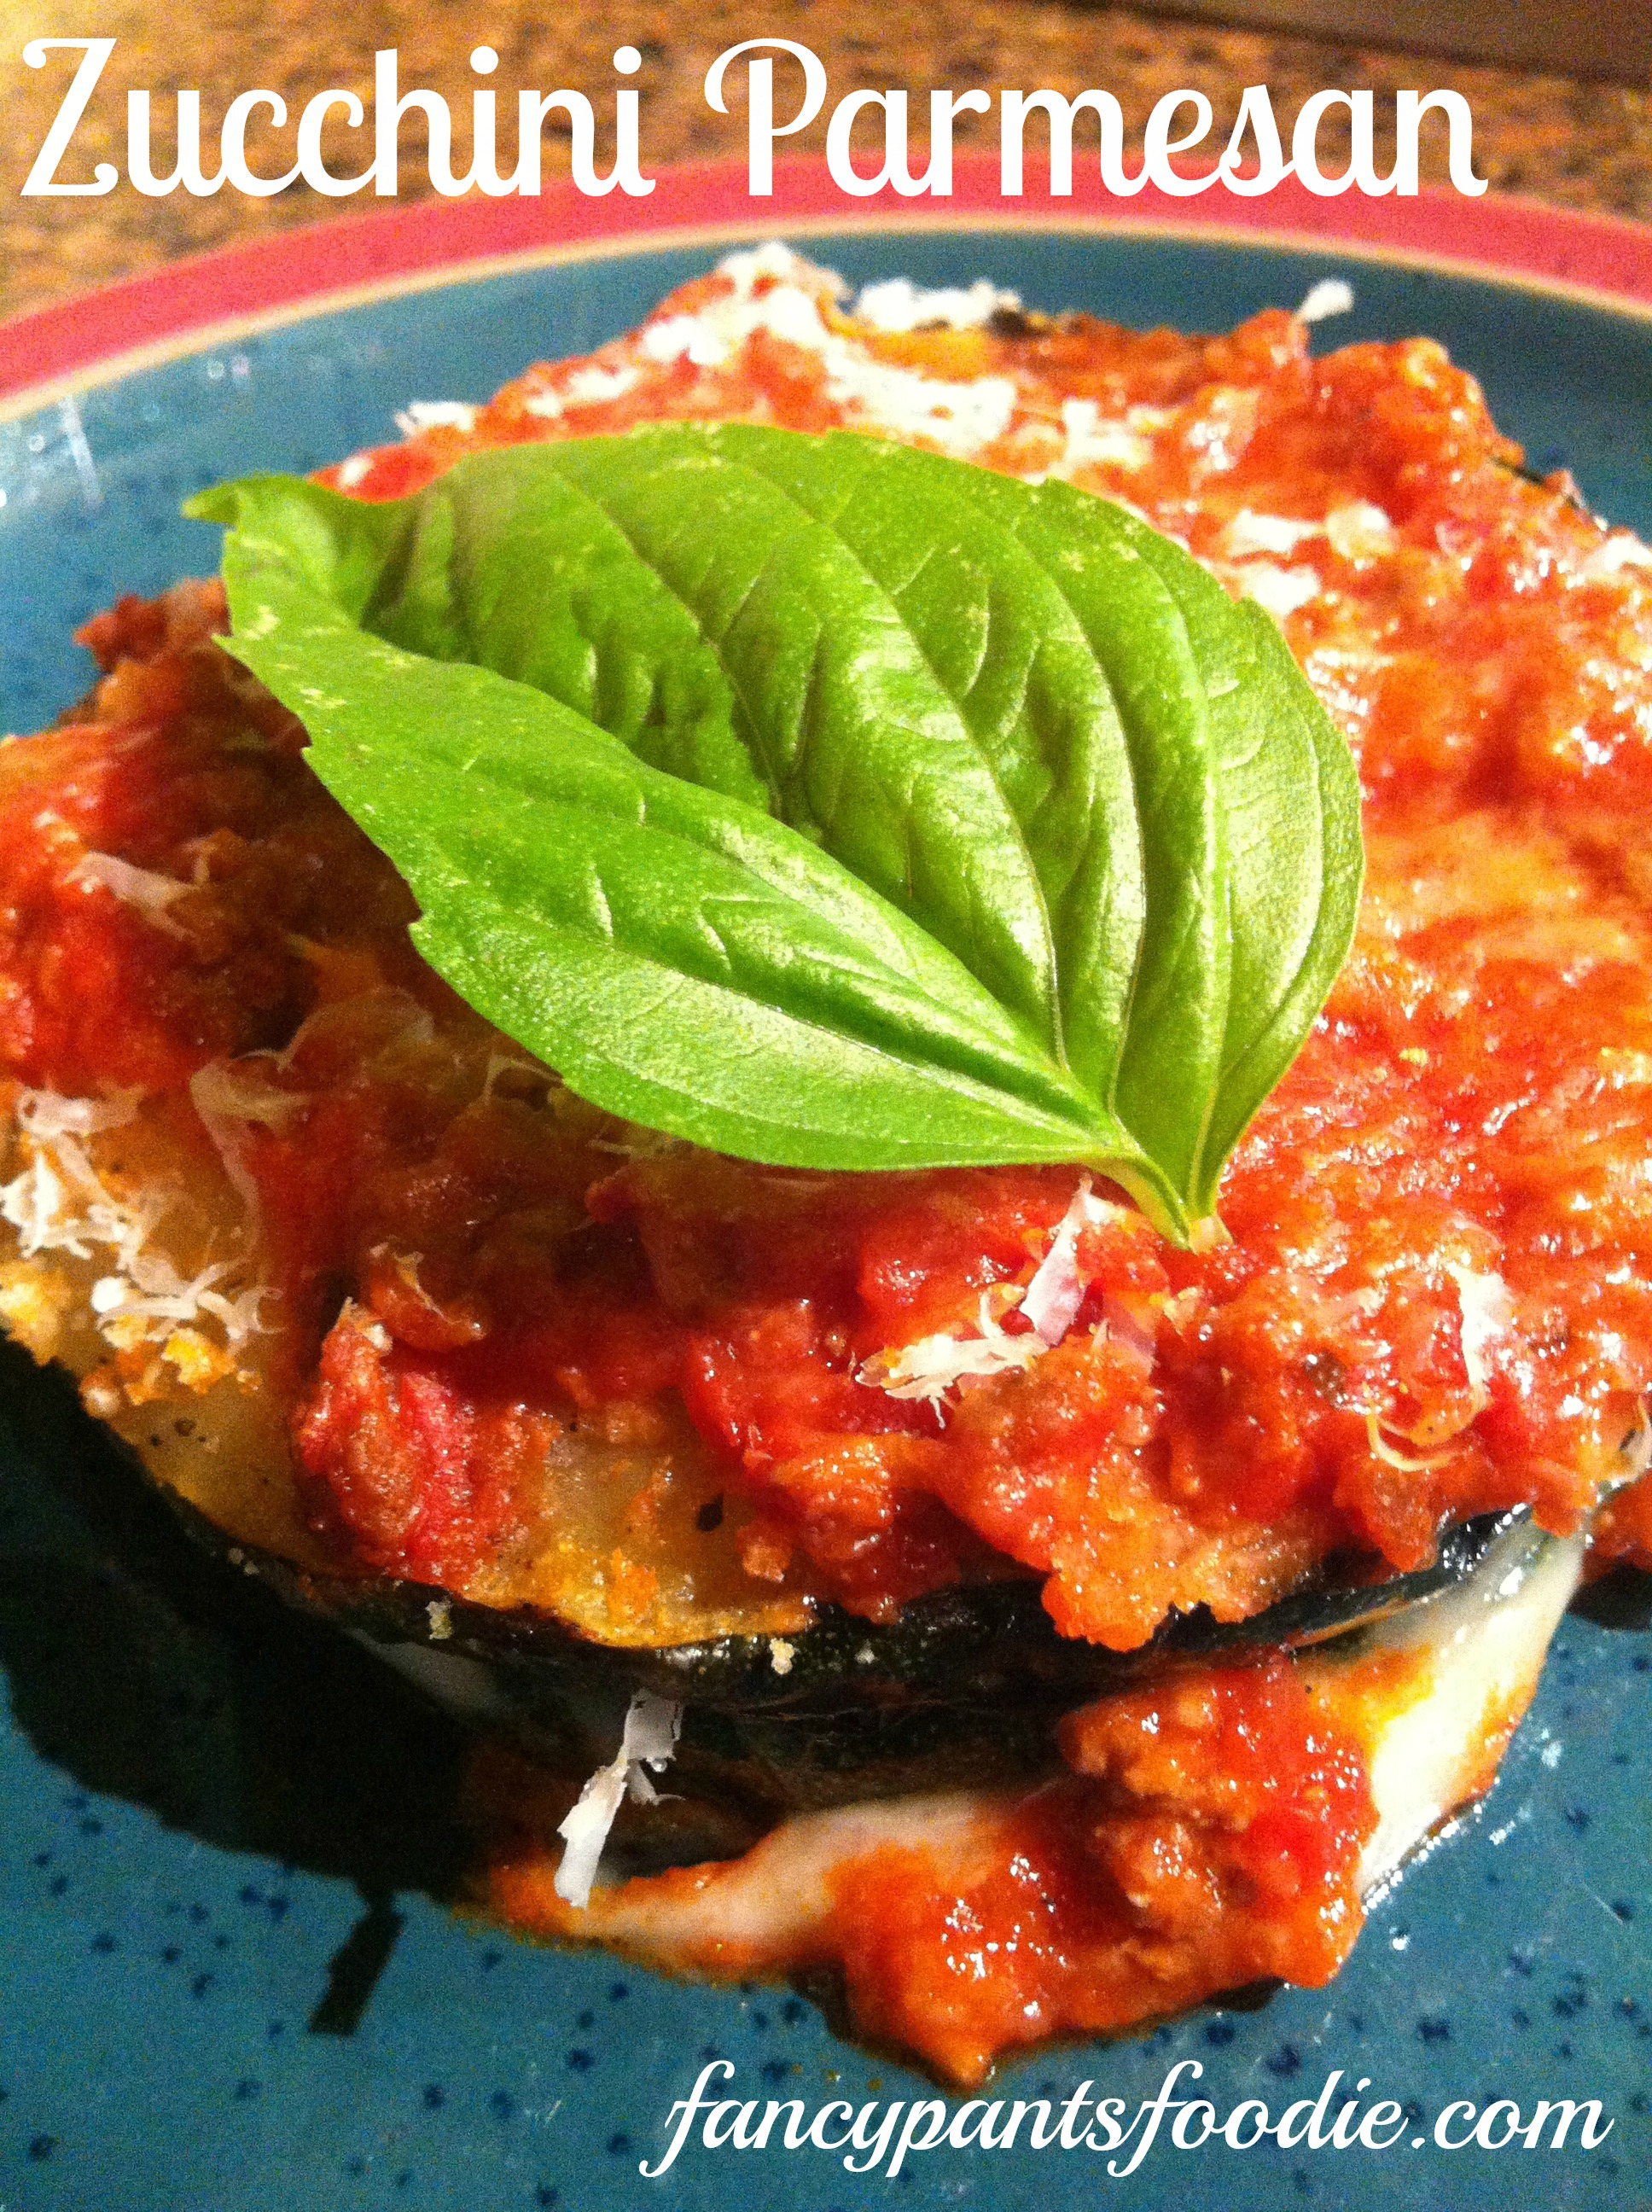 Overhead shot of zucchini parmesan with tomato sauce and freshly grated parmesan, garnished with basil leaf